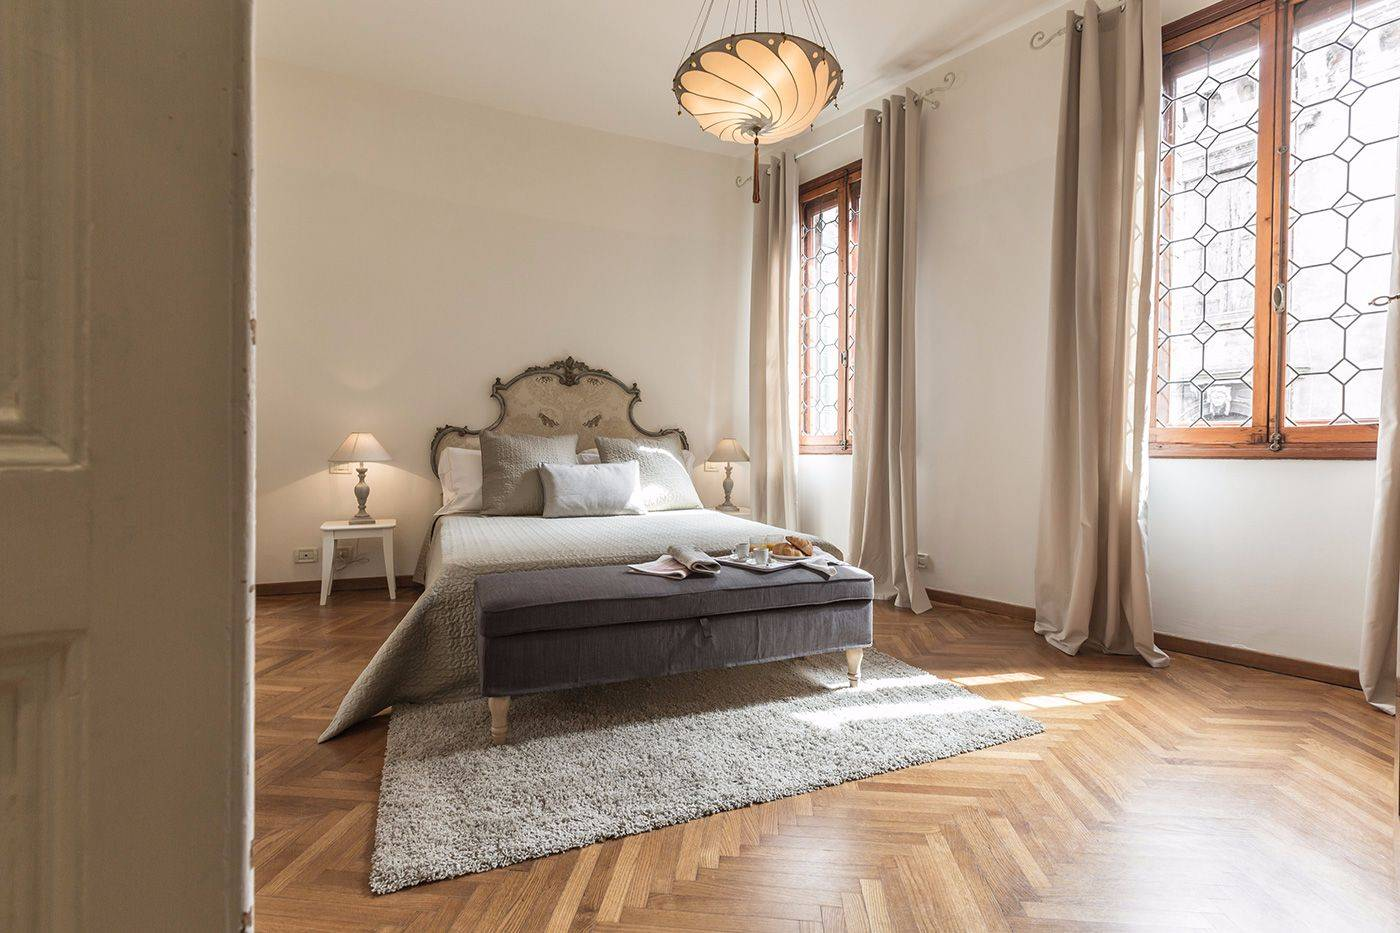 the master bedroom is very spacious and elegant